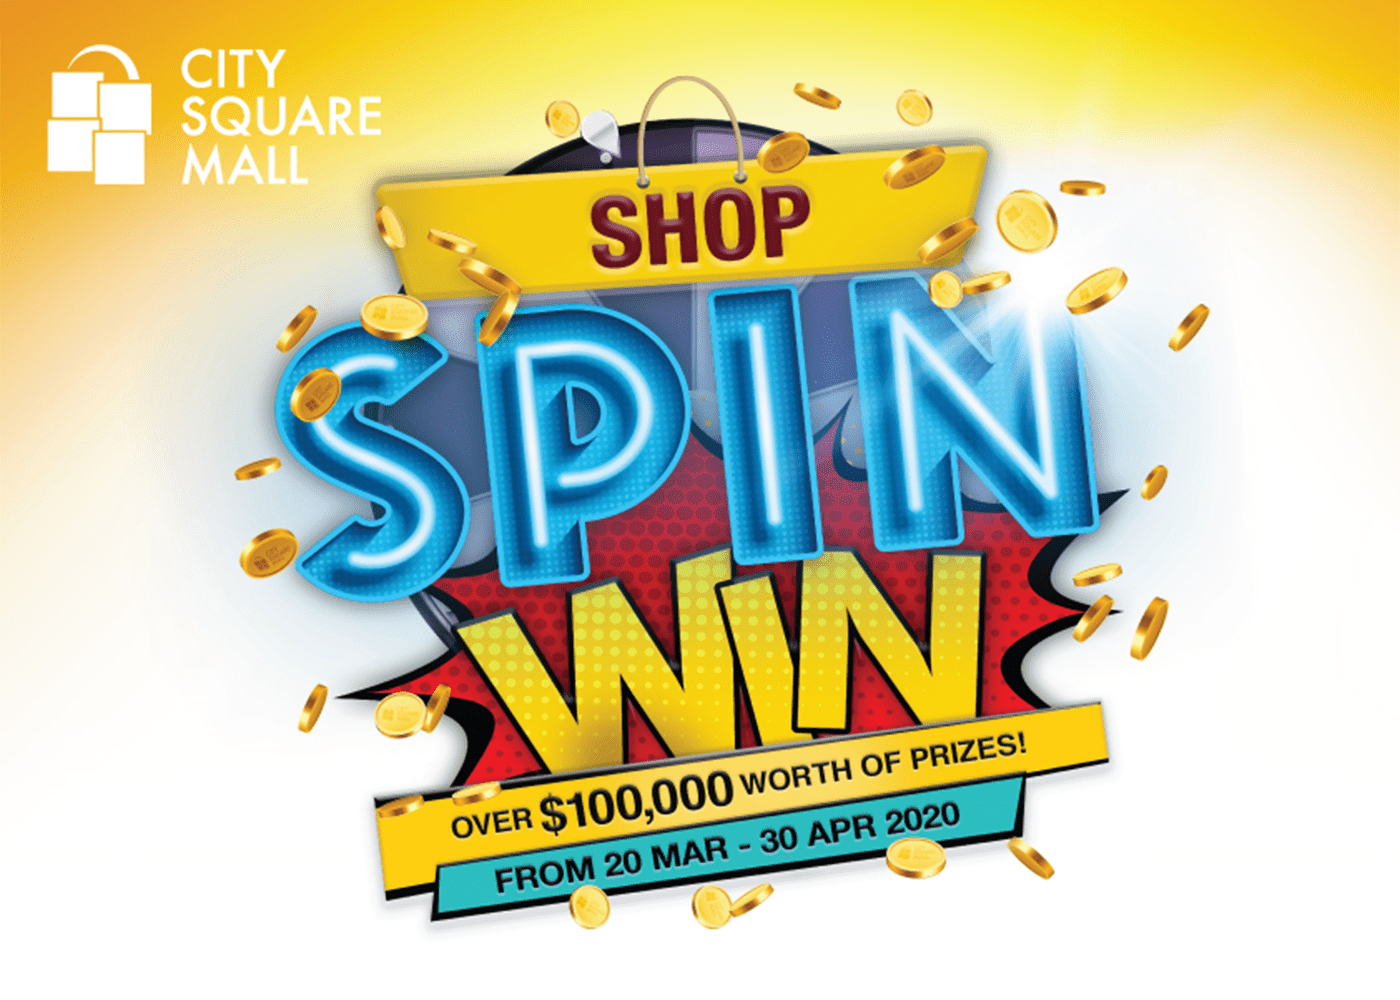 Shop, Spin, and Win at City Square Mall!